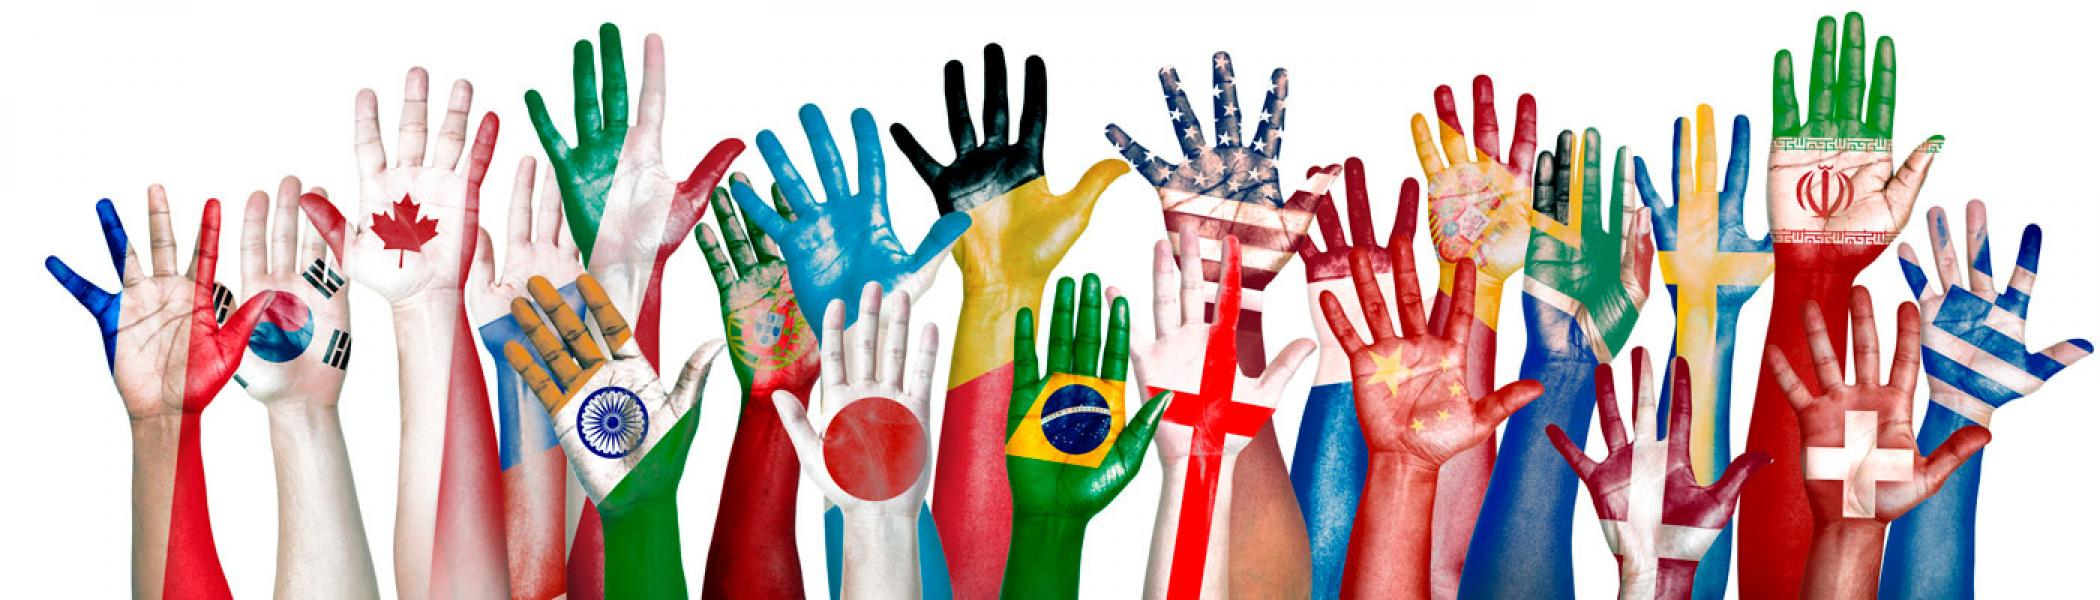 Hands painted with flags of the world reaching up.